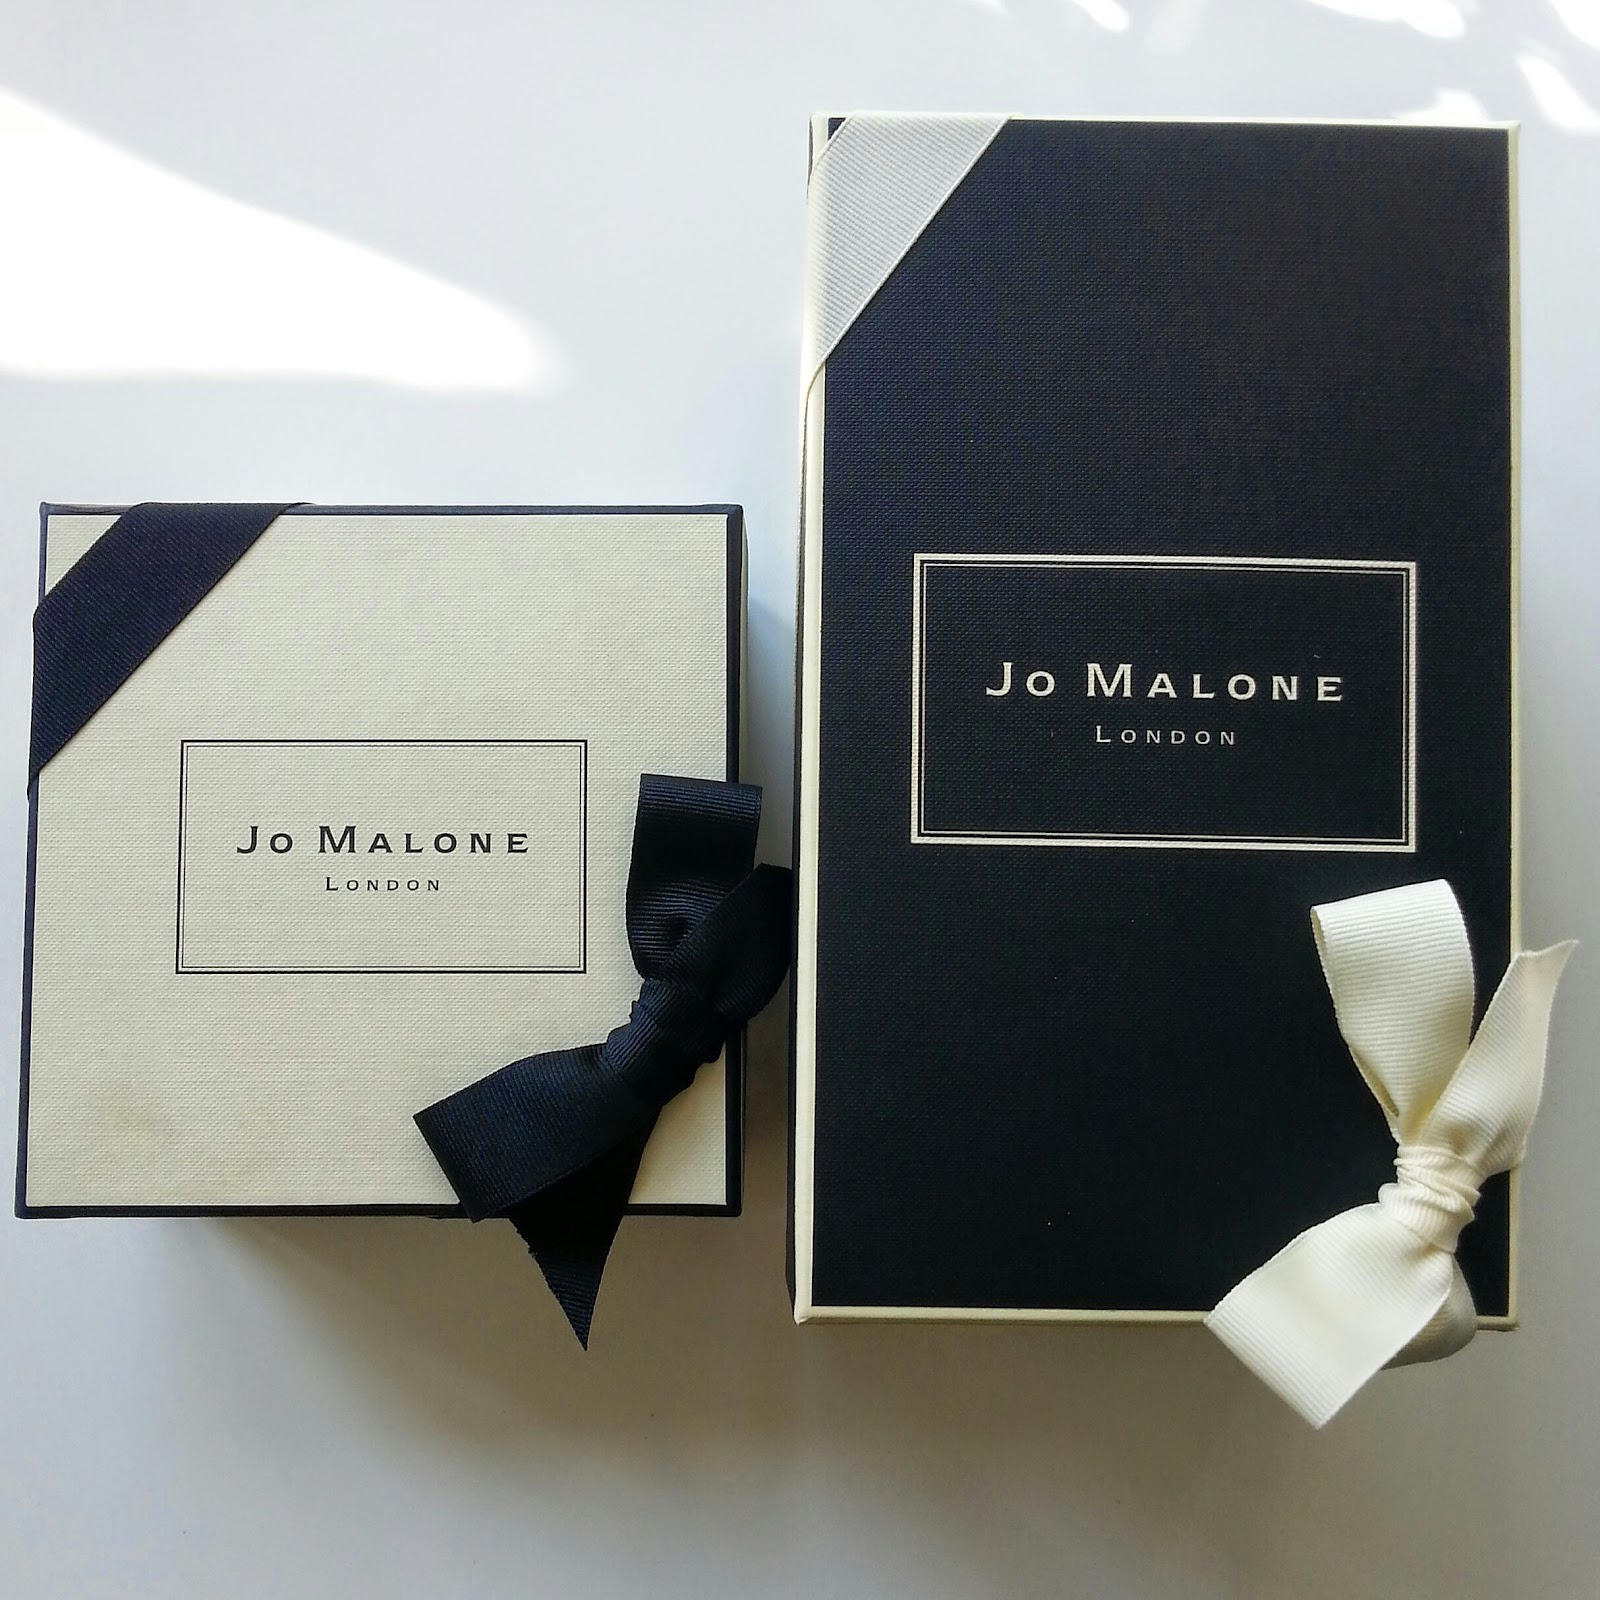 Jo Malone candle and perfume cologne